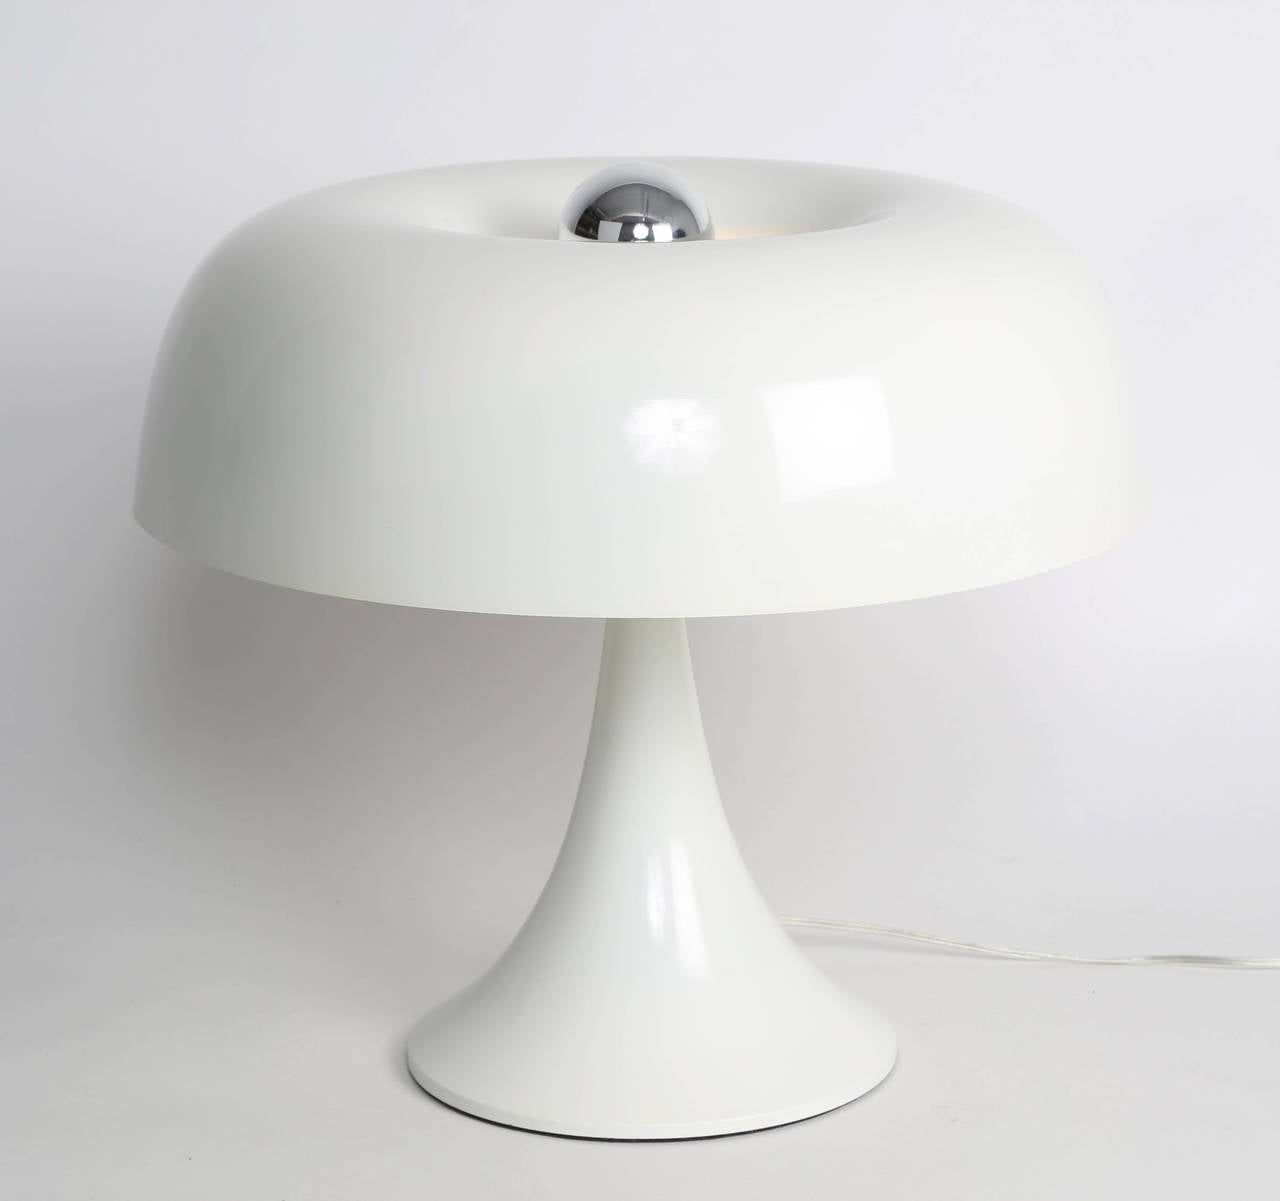 Super-mod 1970s table lamp by American lighting designer Robert Sonneman. Constructed of spun aluminum with a glossy-white enamel finish. Mushroom shade conceals three sockets underneath and is topped with a fourth socket, which looks great with a